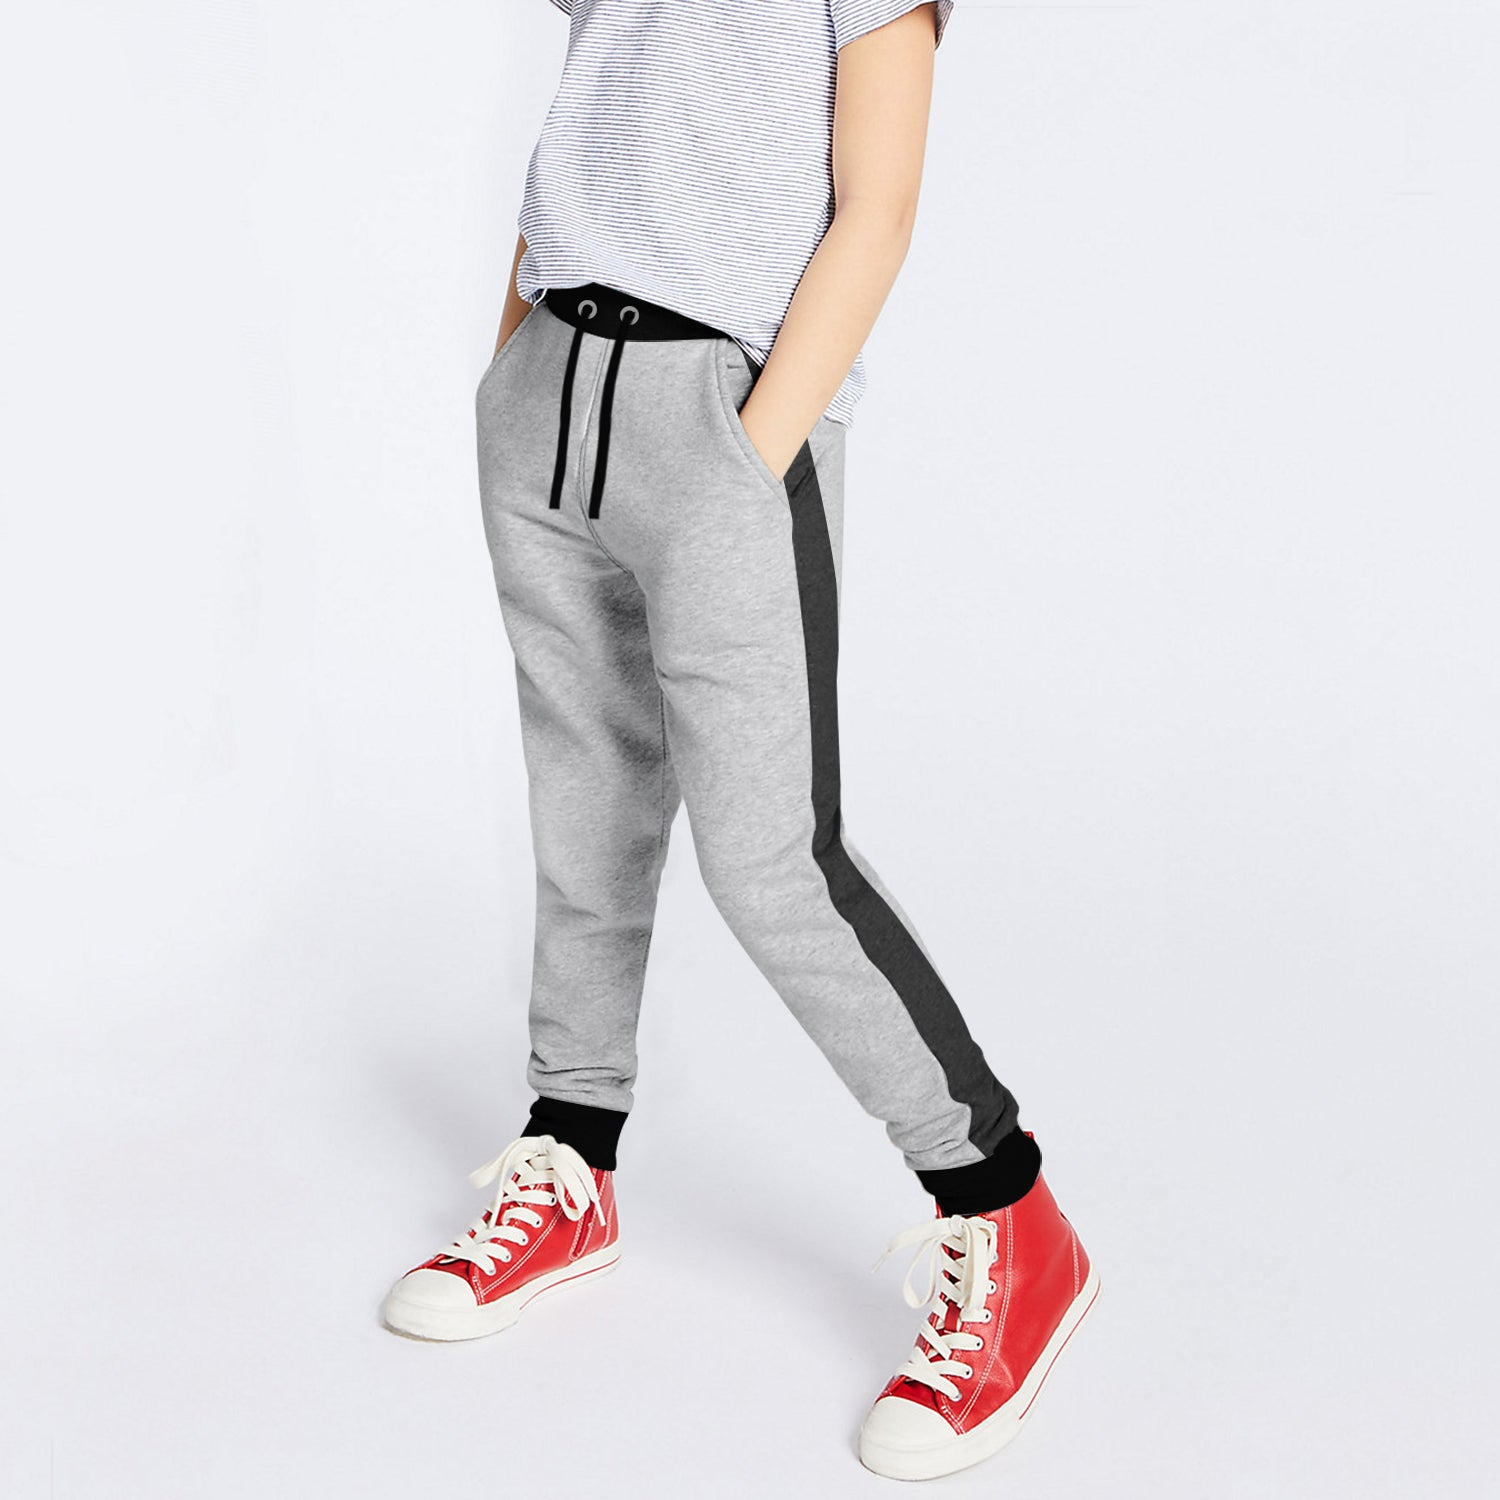 Uneek Single Jersey Jogger Trouser For Boys-Grey & Charcoal Melange with Black Panels-BE10161